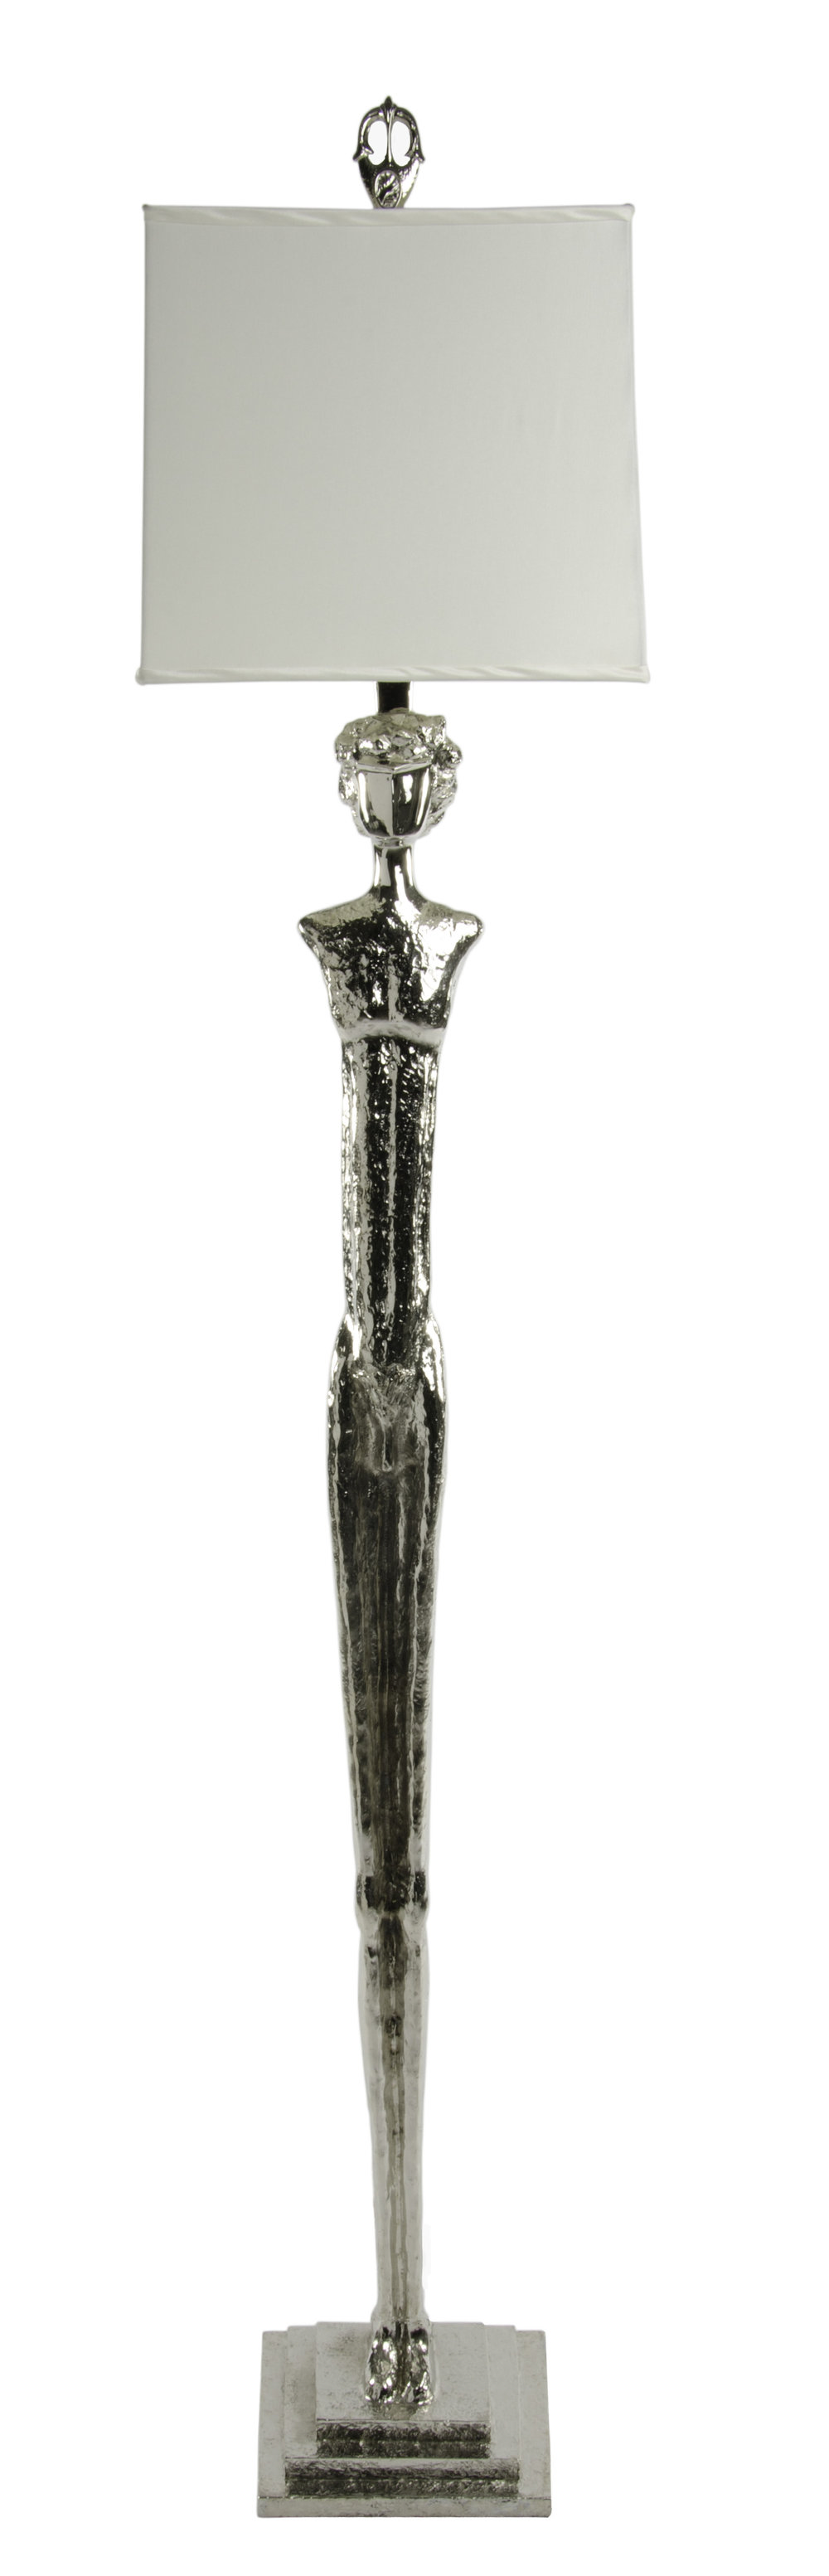 CARYATID FLOOR LAMP MALE.jpg